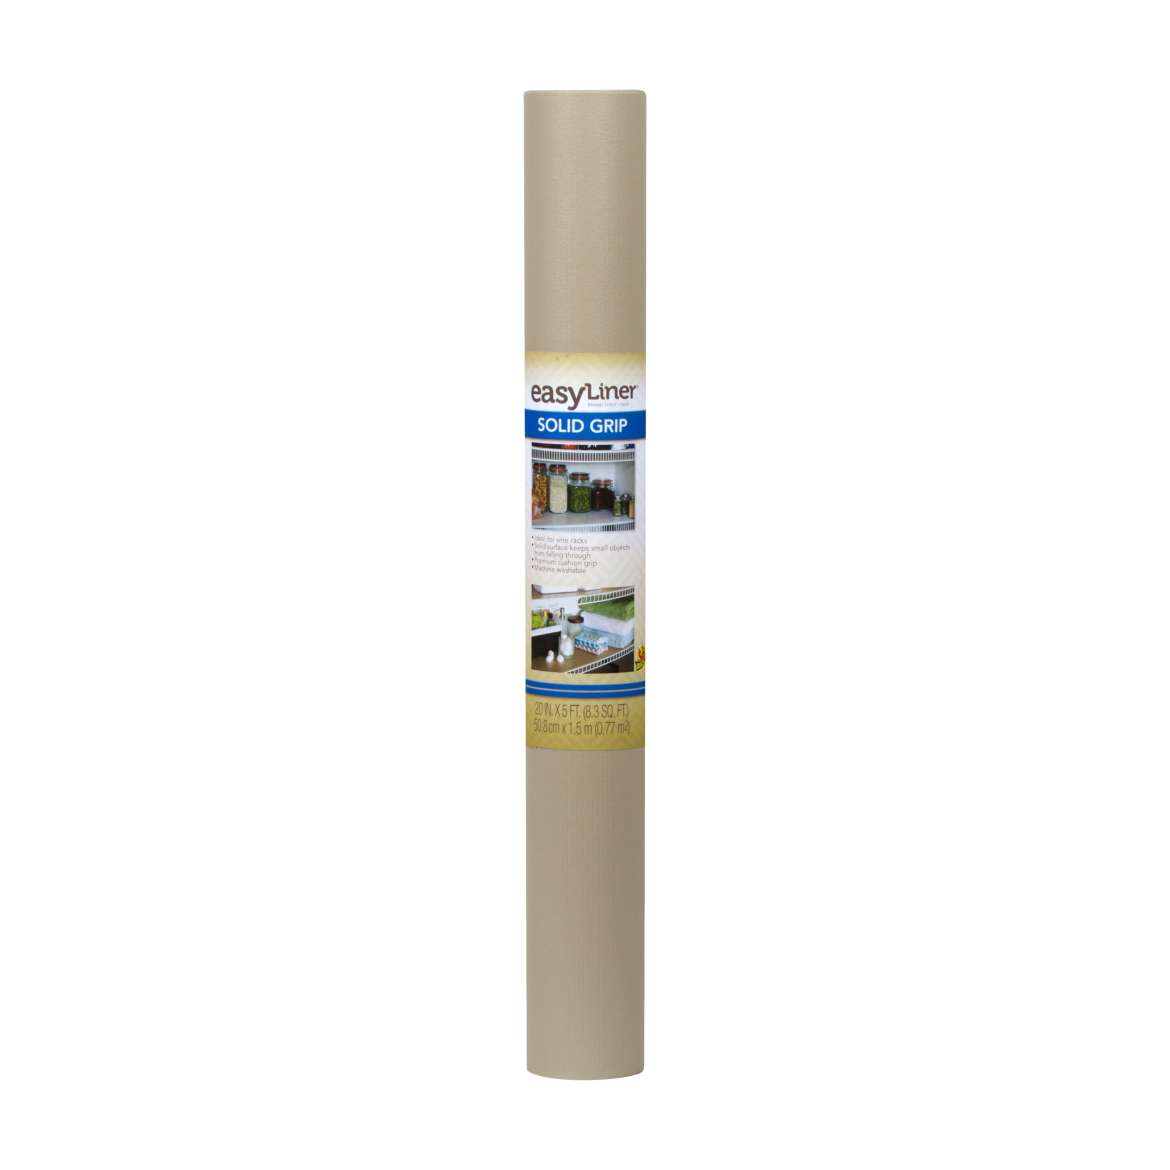 Solid Grip Easy Liner® Brand Shelf Liner - Taupe, 20 in. x 5 ft. Image